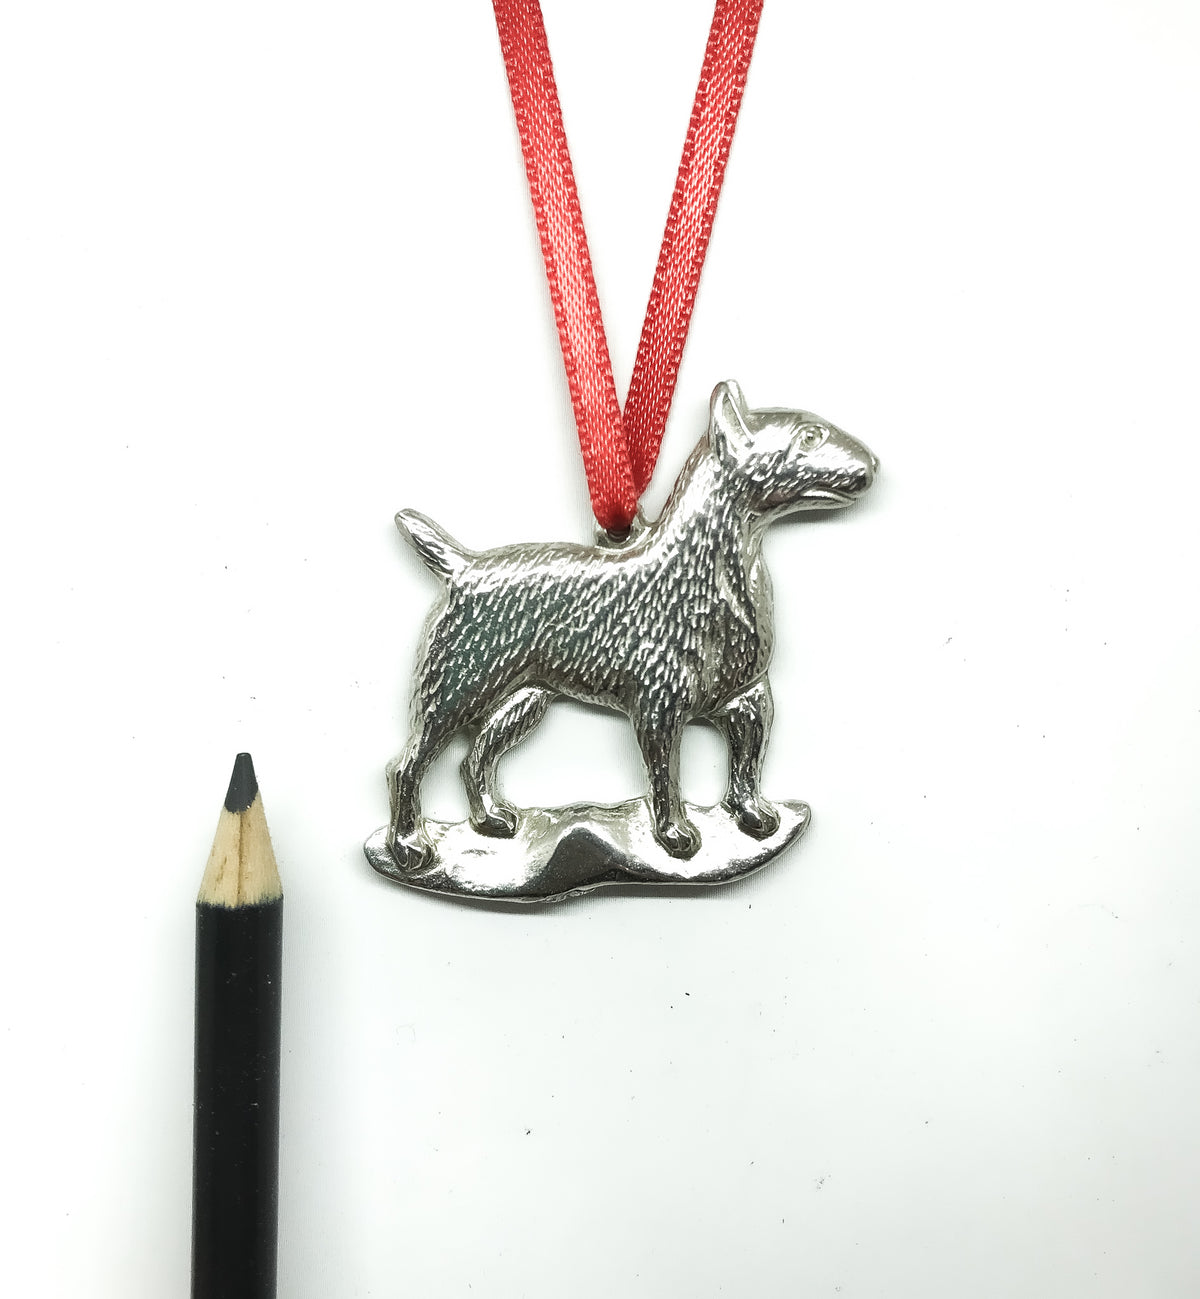 USA Handcrafted Bull Terrior Dog Memorial Holiday Keepsake Christmas Ornament Pewter